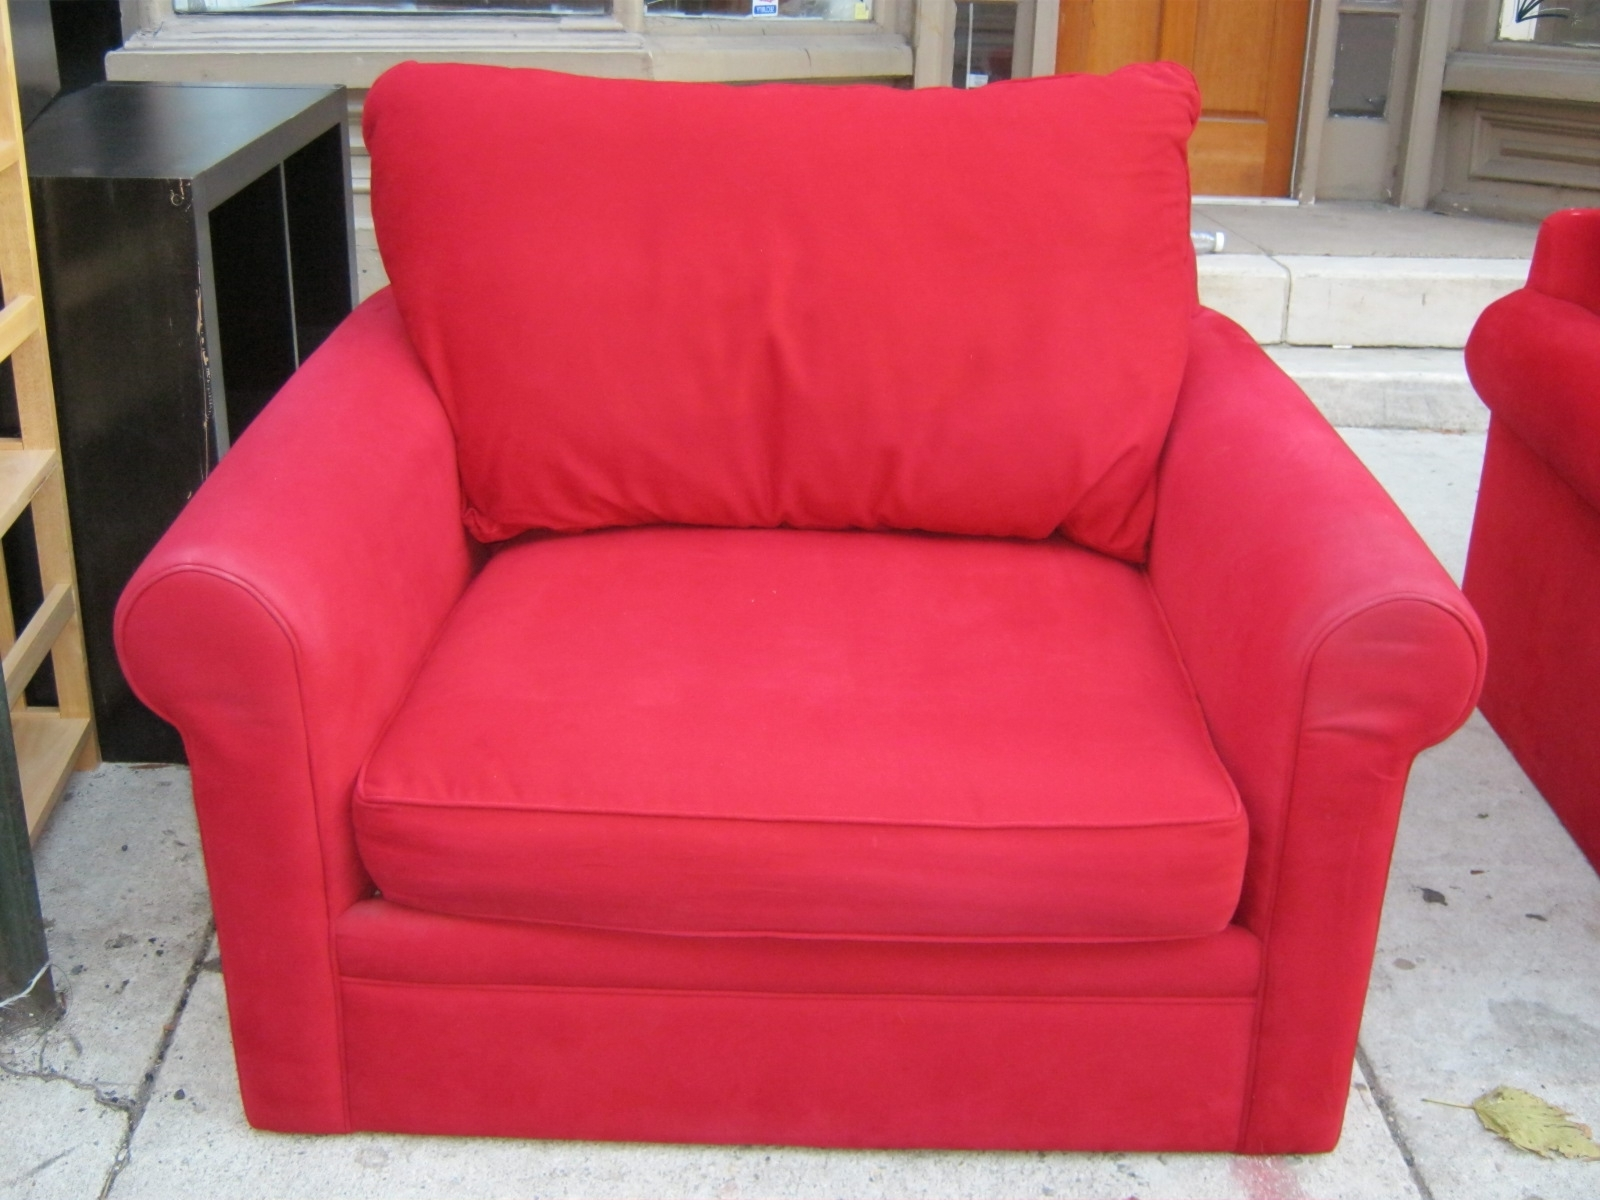 Most Popular Red Sofa Chairs Regarding Uhuru Furniture & Collectibles: Red Sofa Chair And Ottoman Set Sold (View 7 of 15)